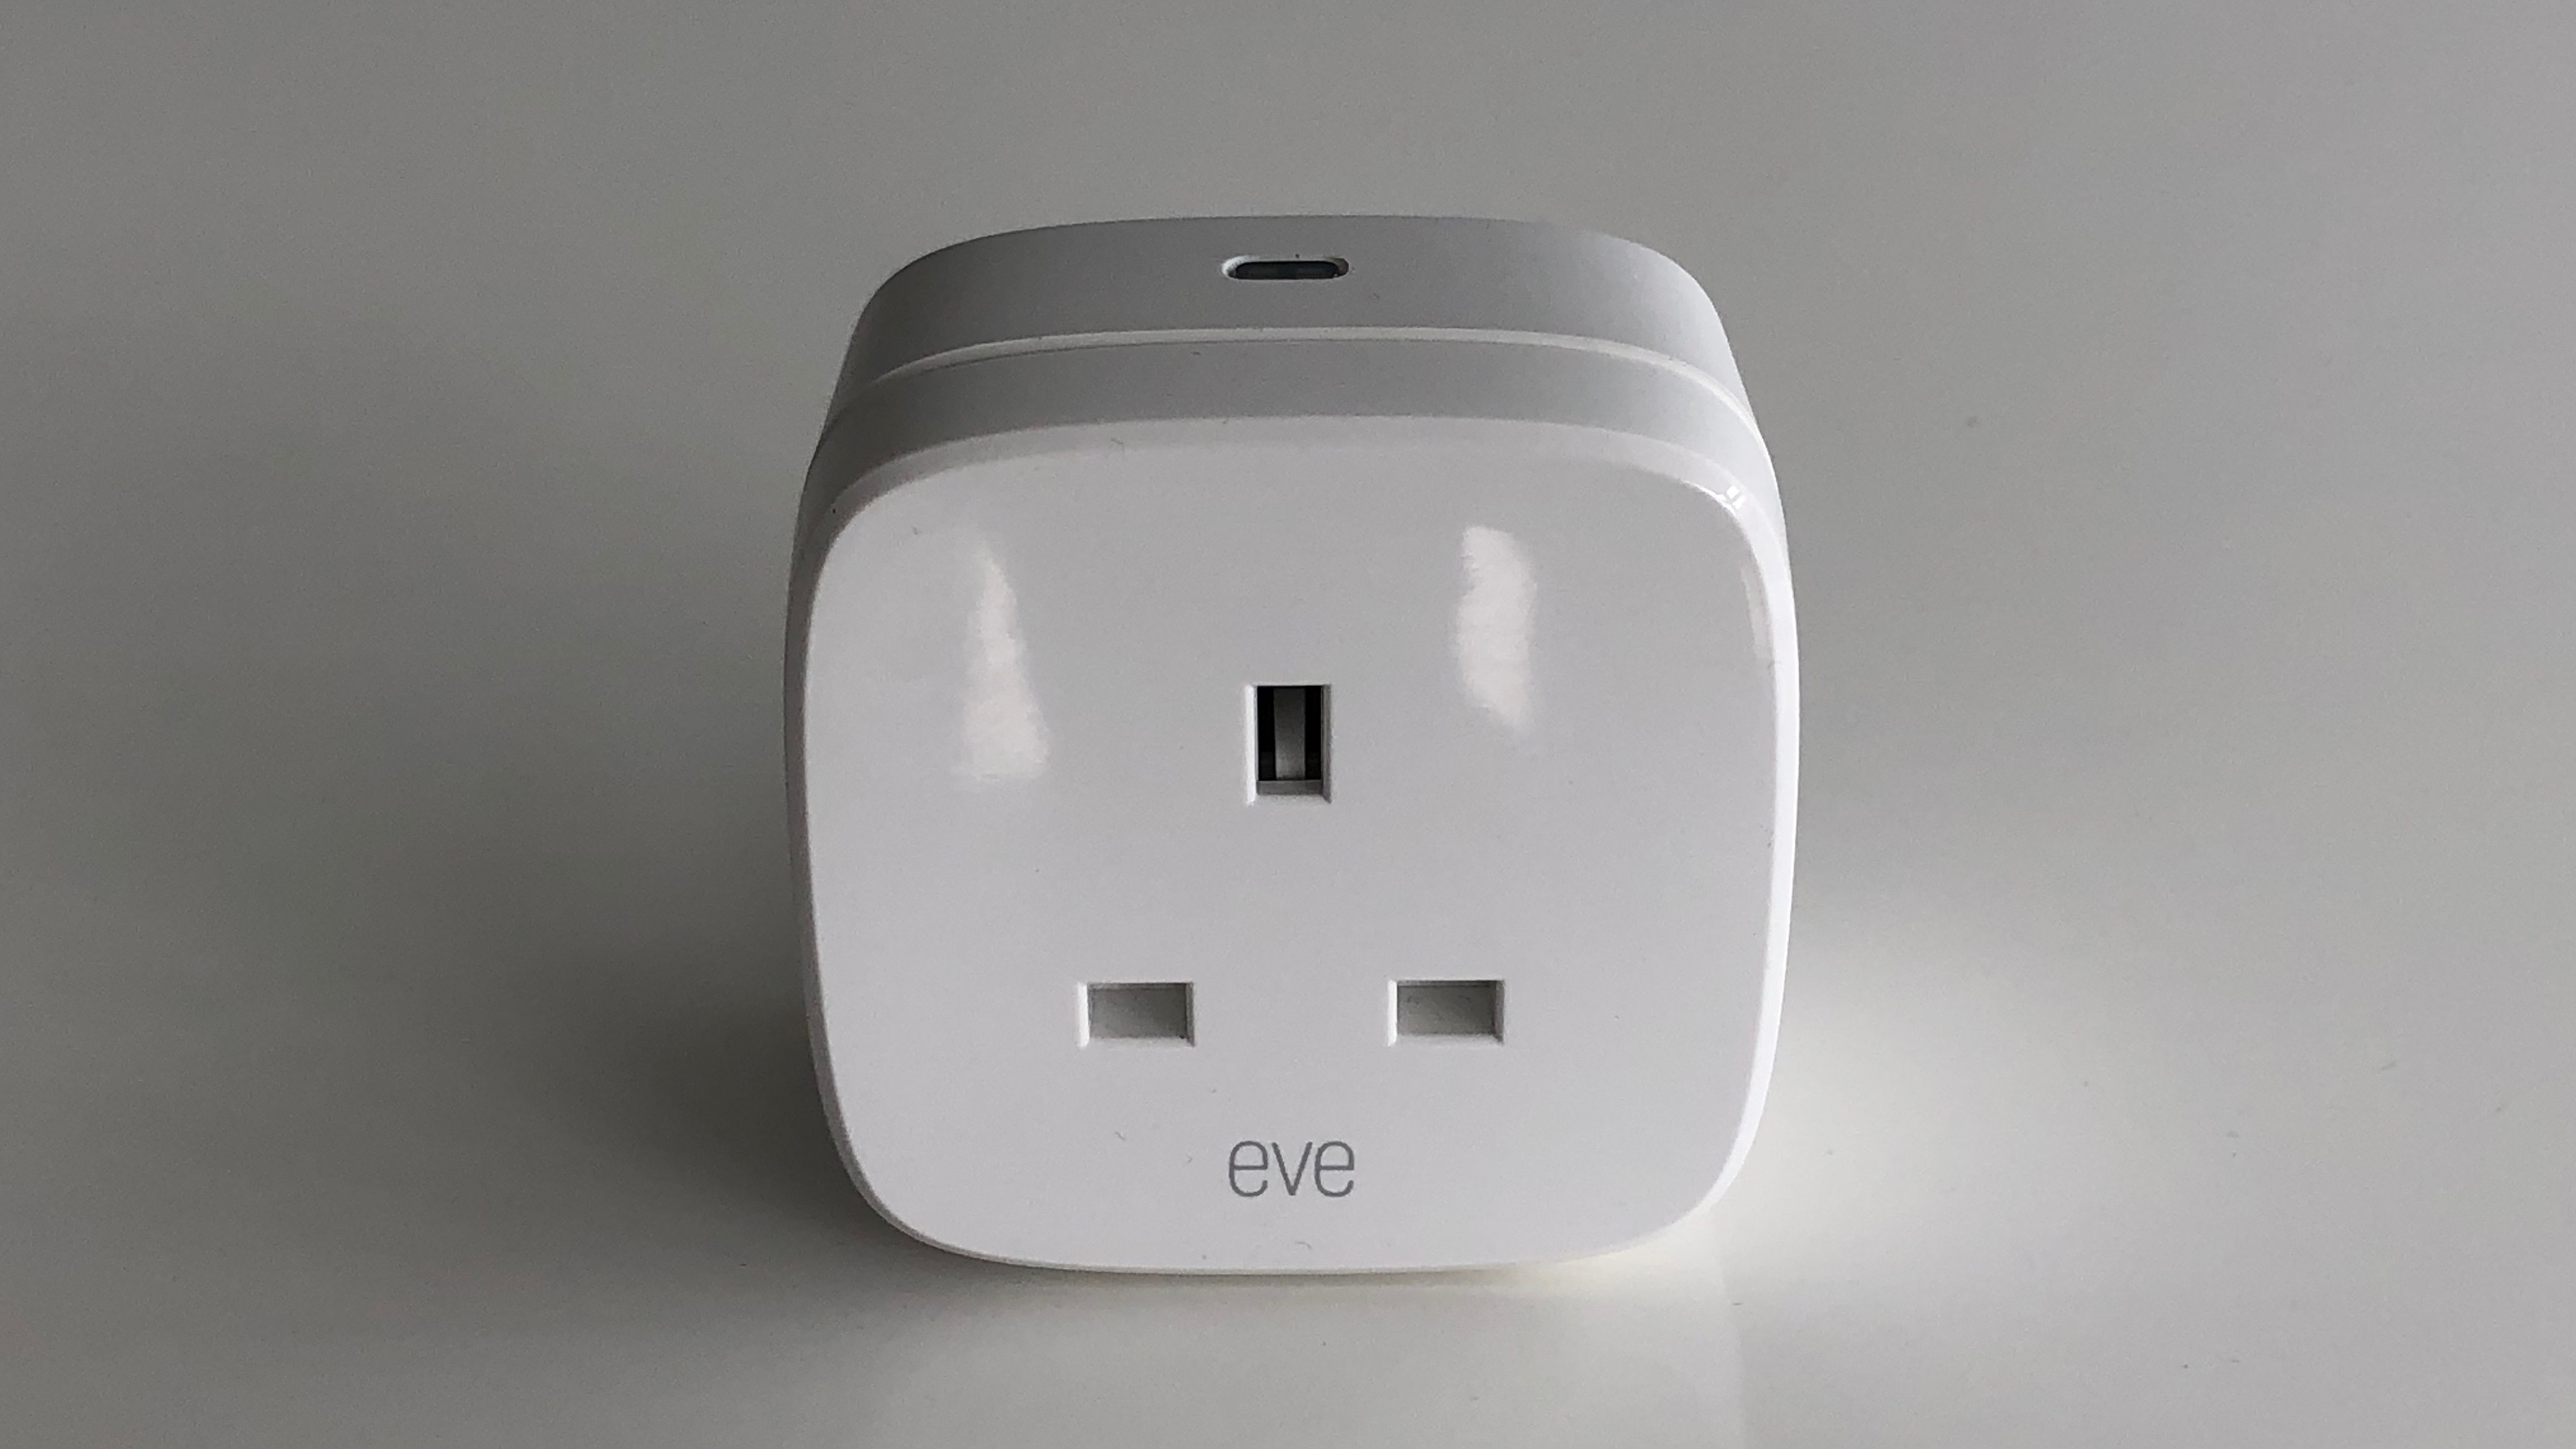 Best UK HomeKit smart plug: Eve Energy review